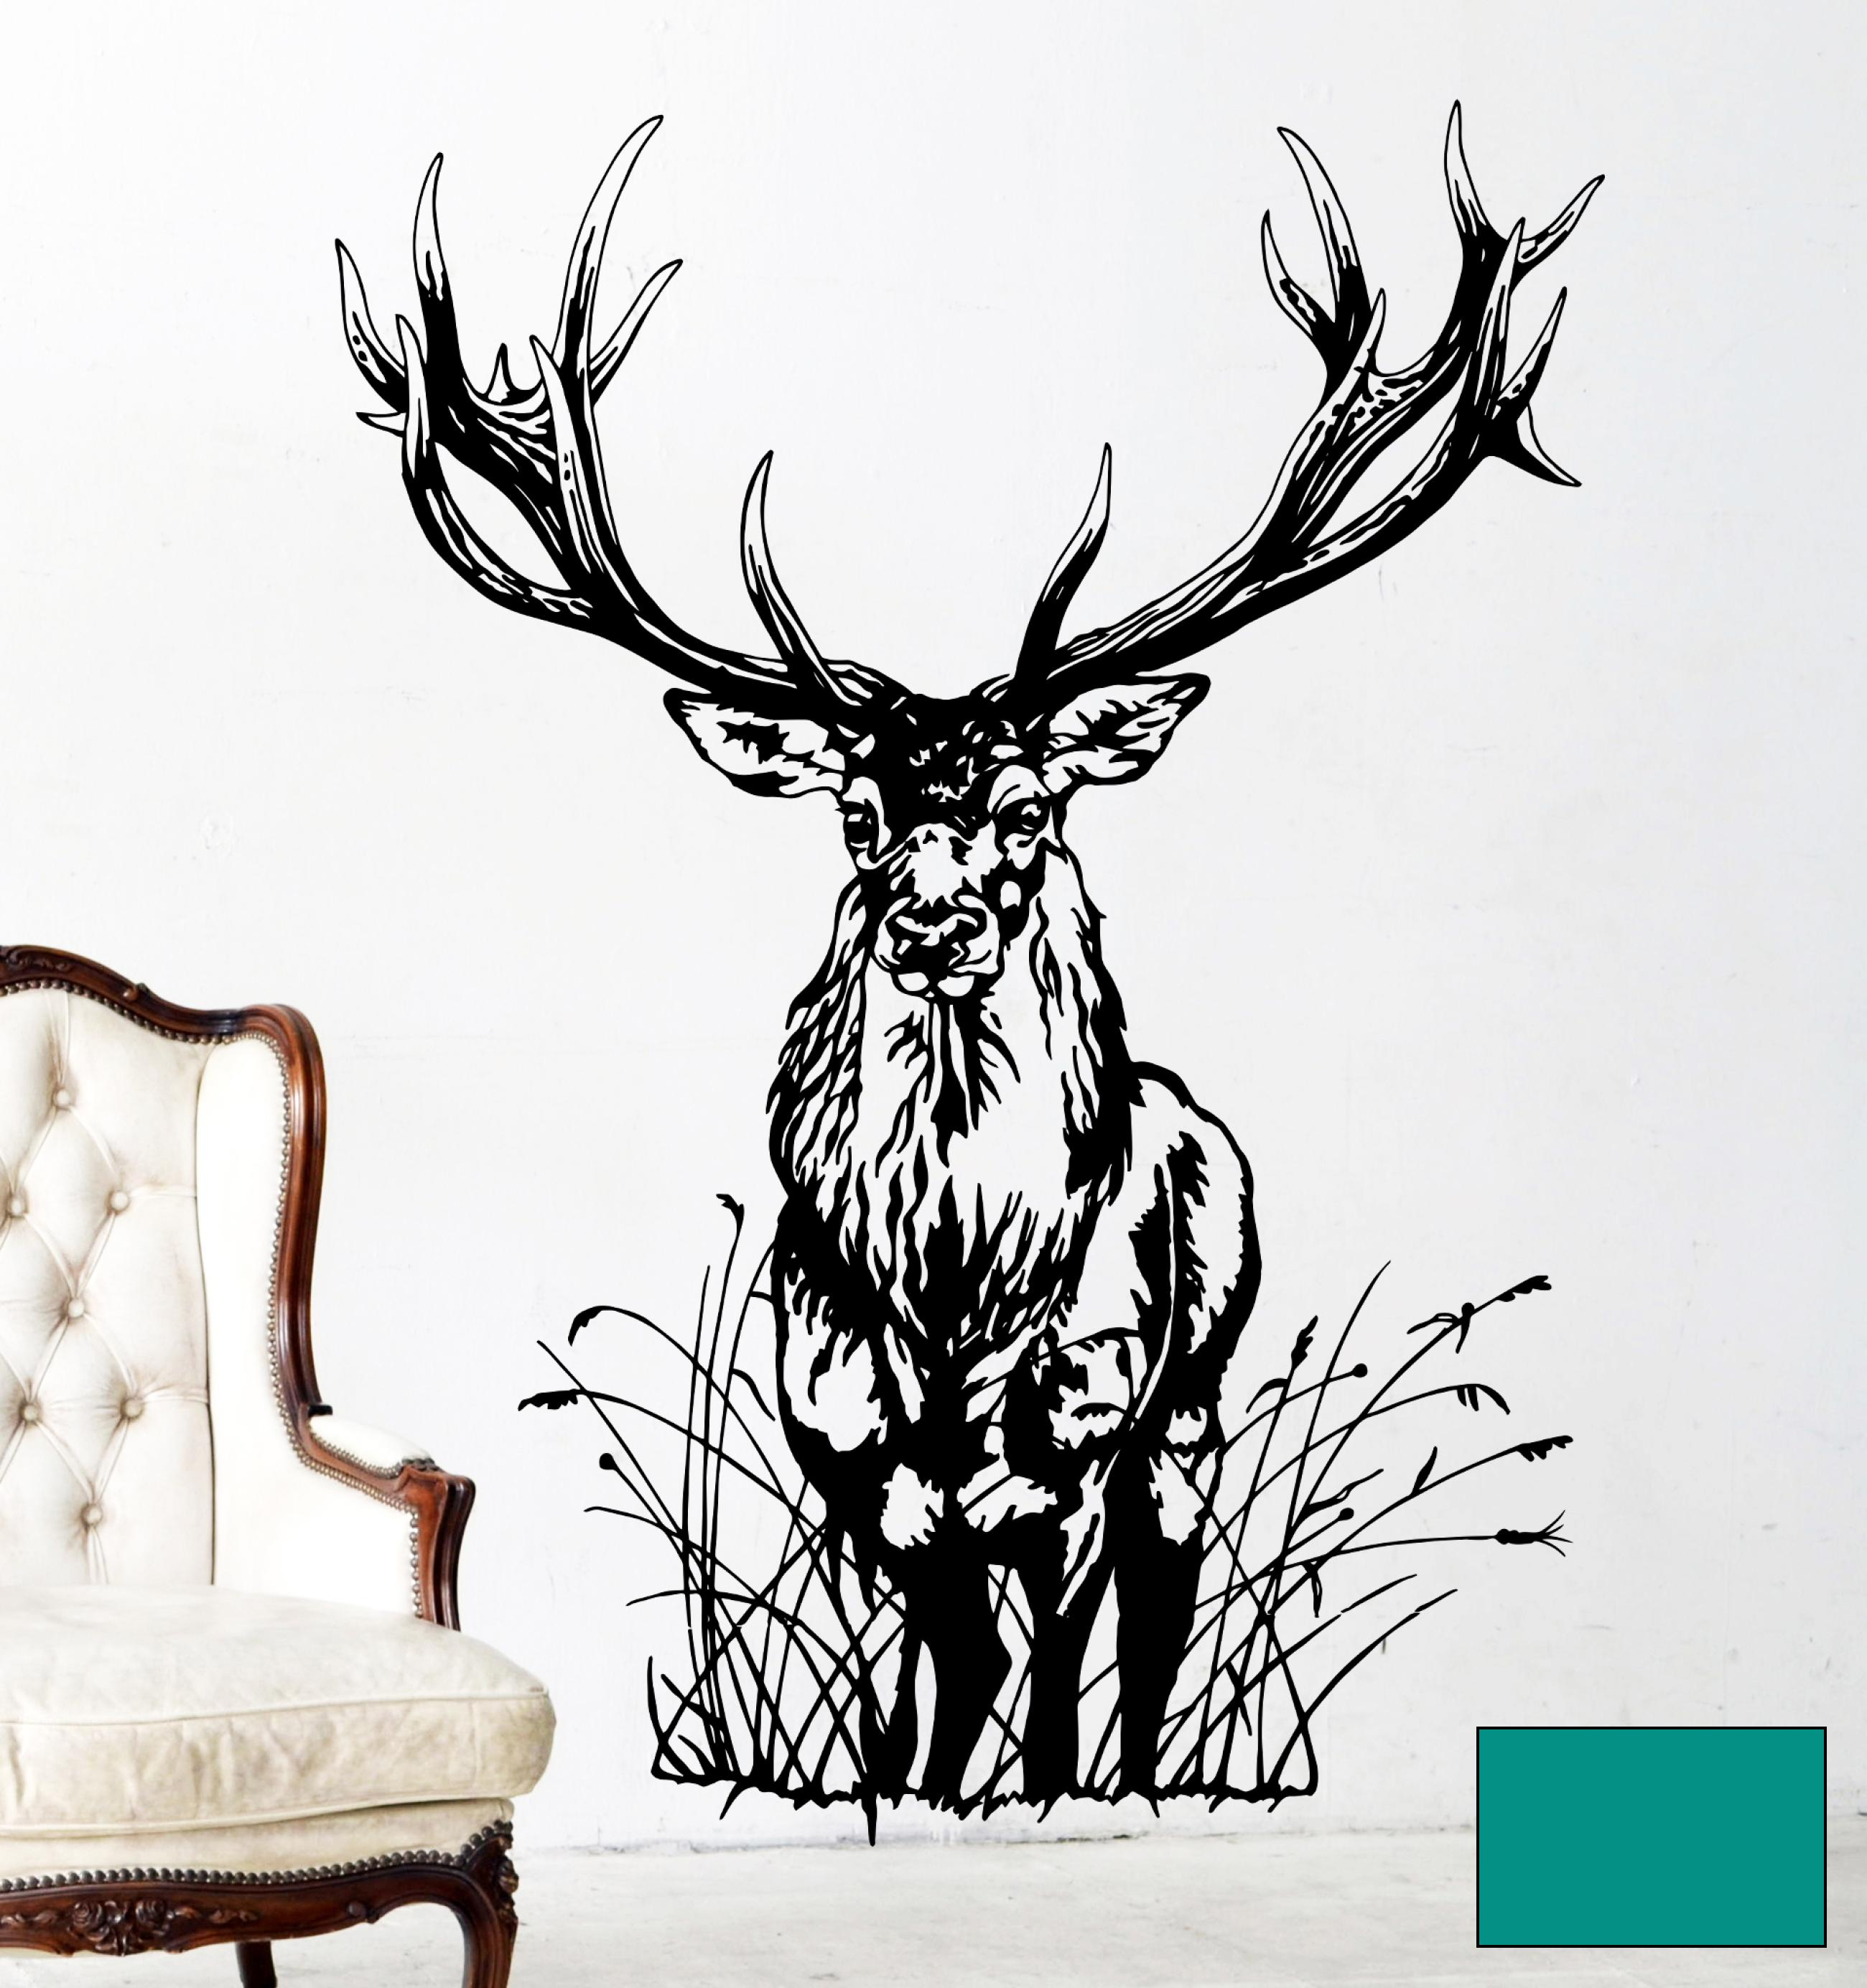 wandtattoo hirsch wild rehbock waldtier reh m1713 ebay. Black Bedroom Furniture Sets. Home Design Ideas